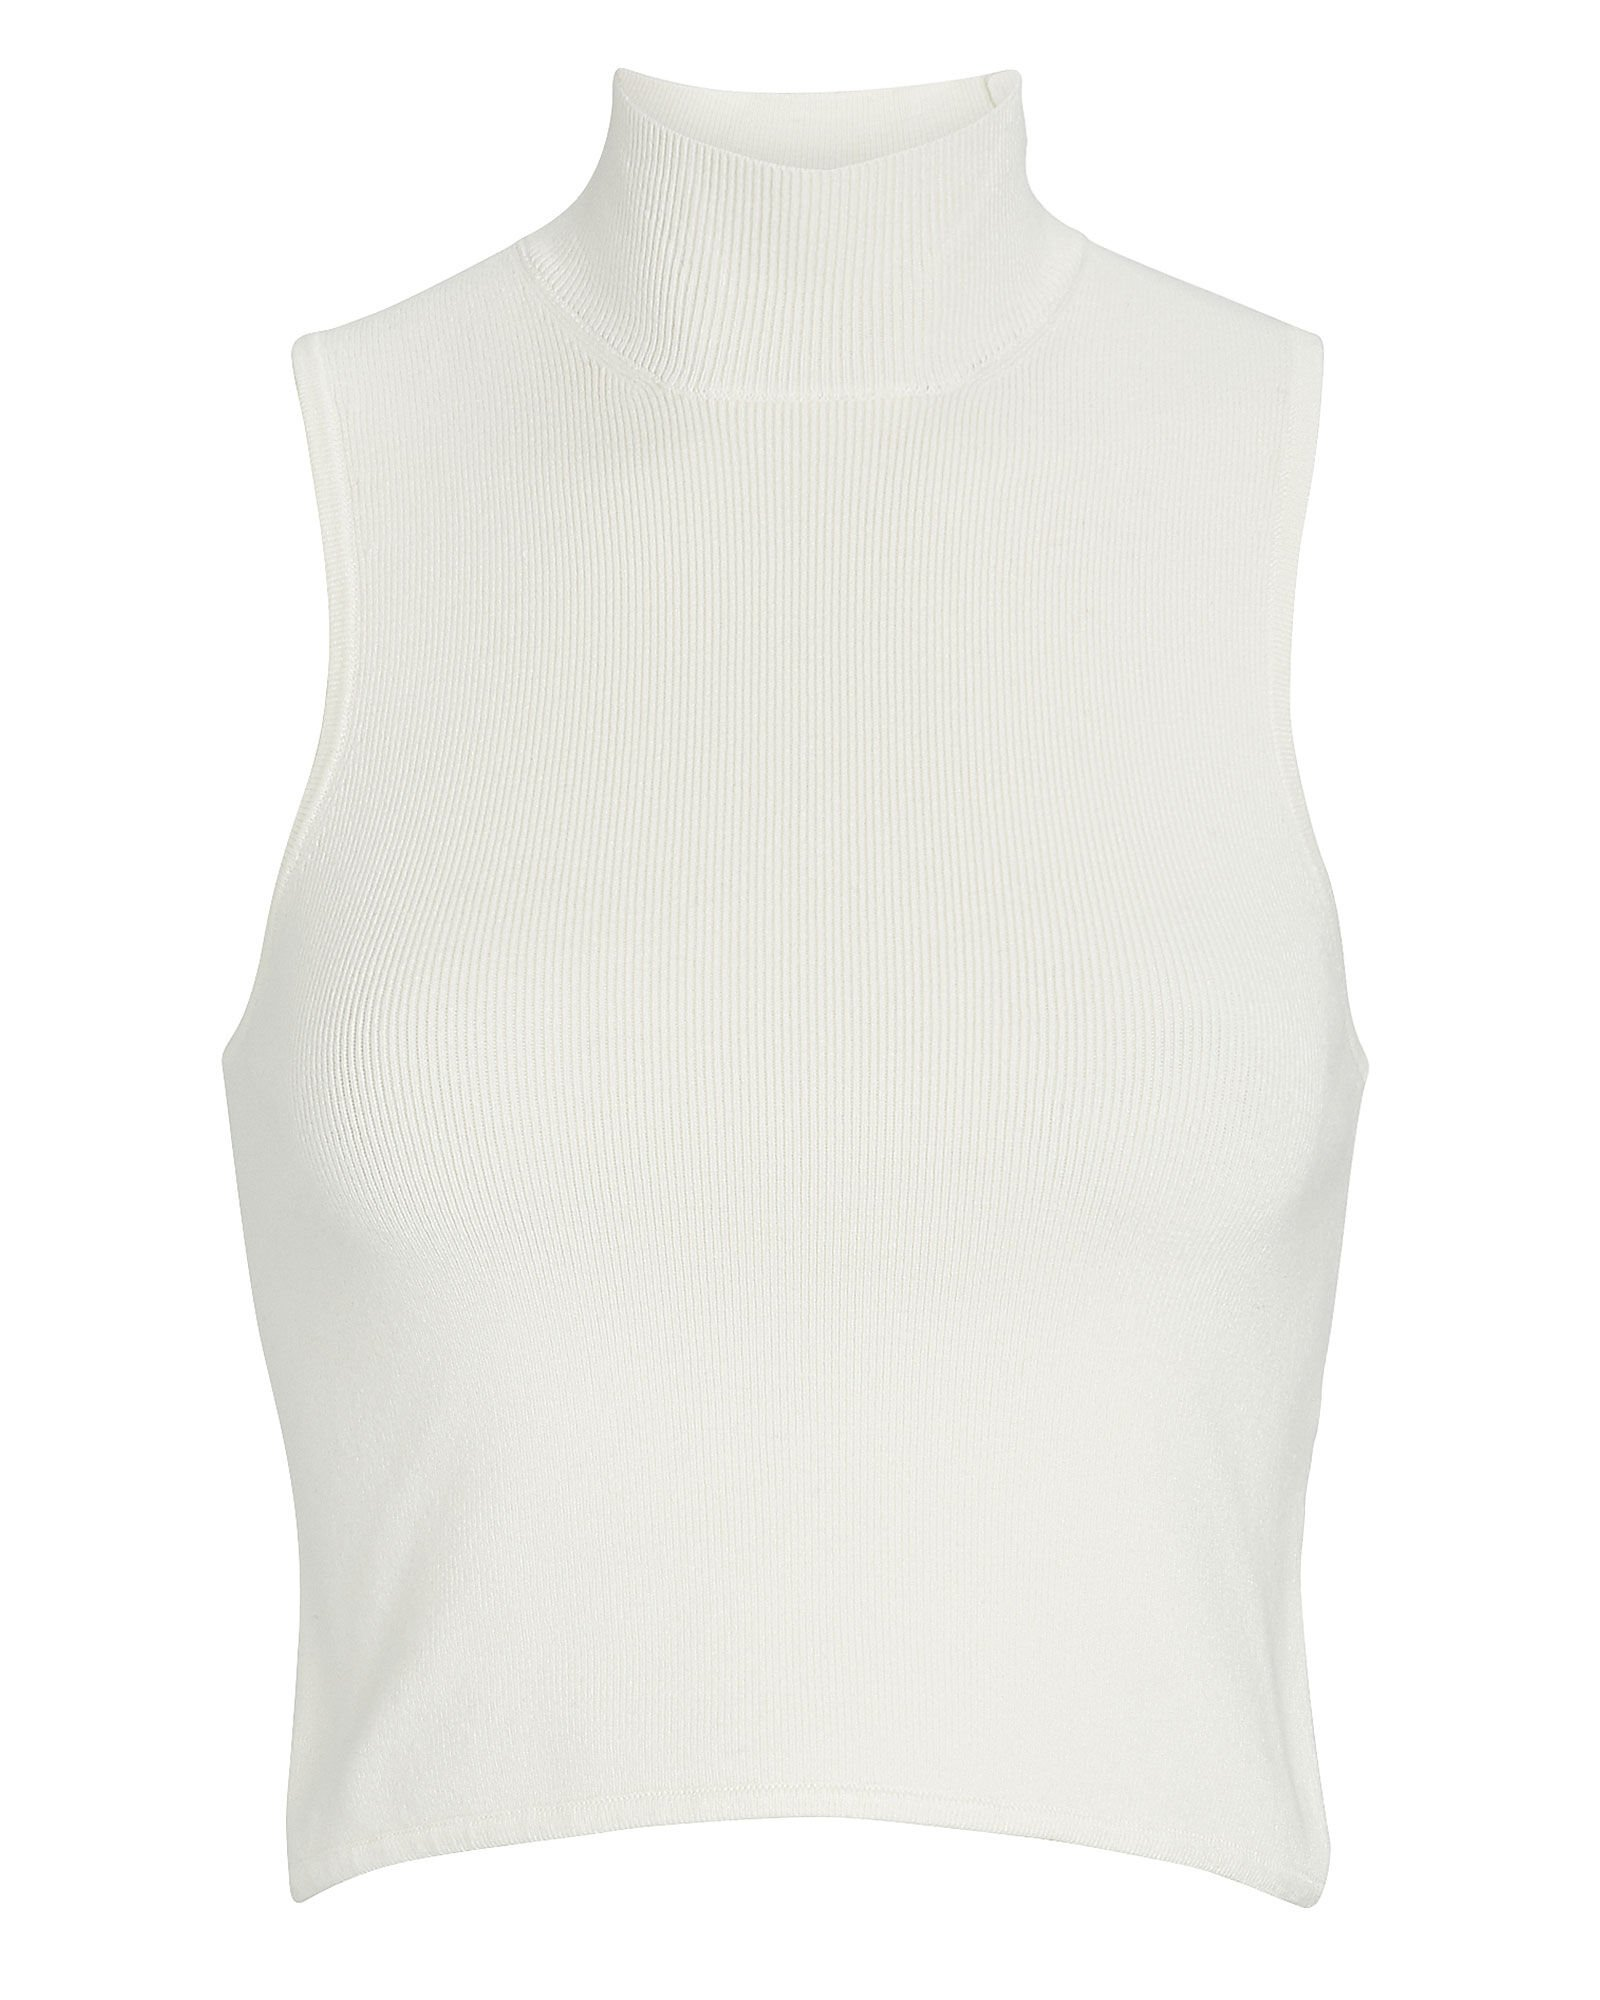 Holly Sleeveless Turtleneck Top, WHITE, hi-res